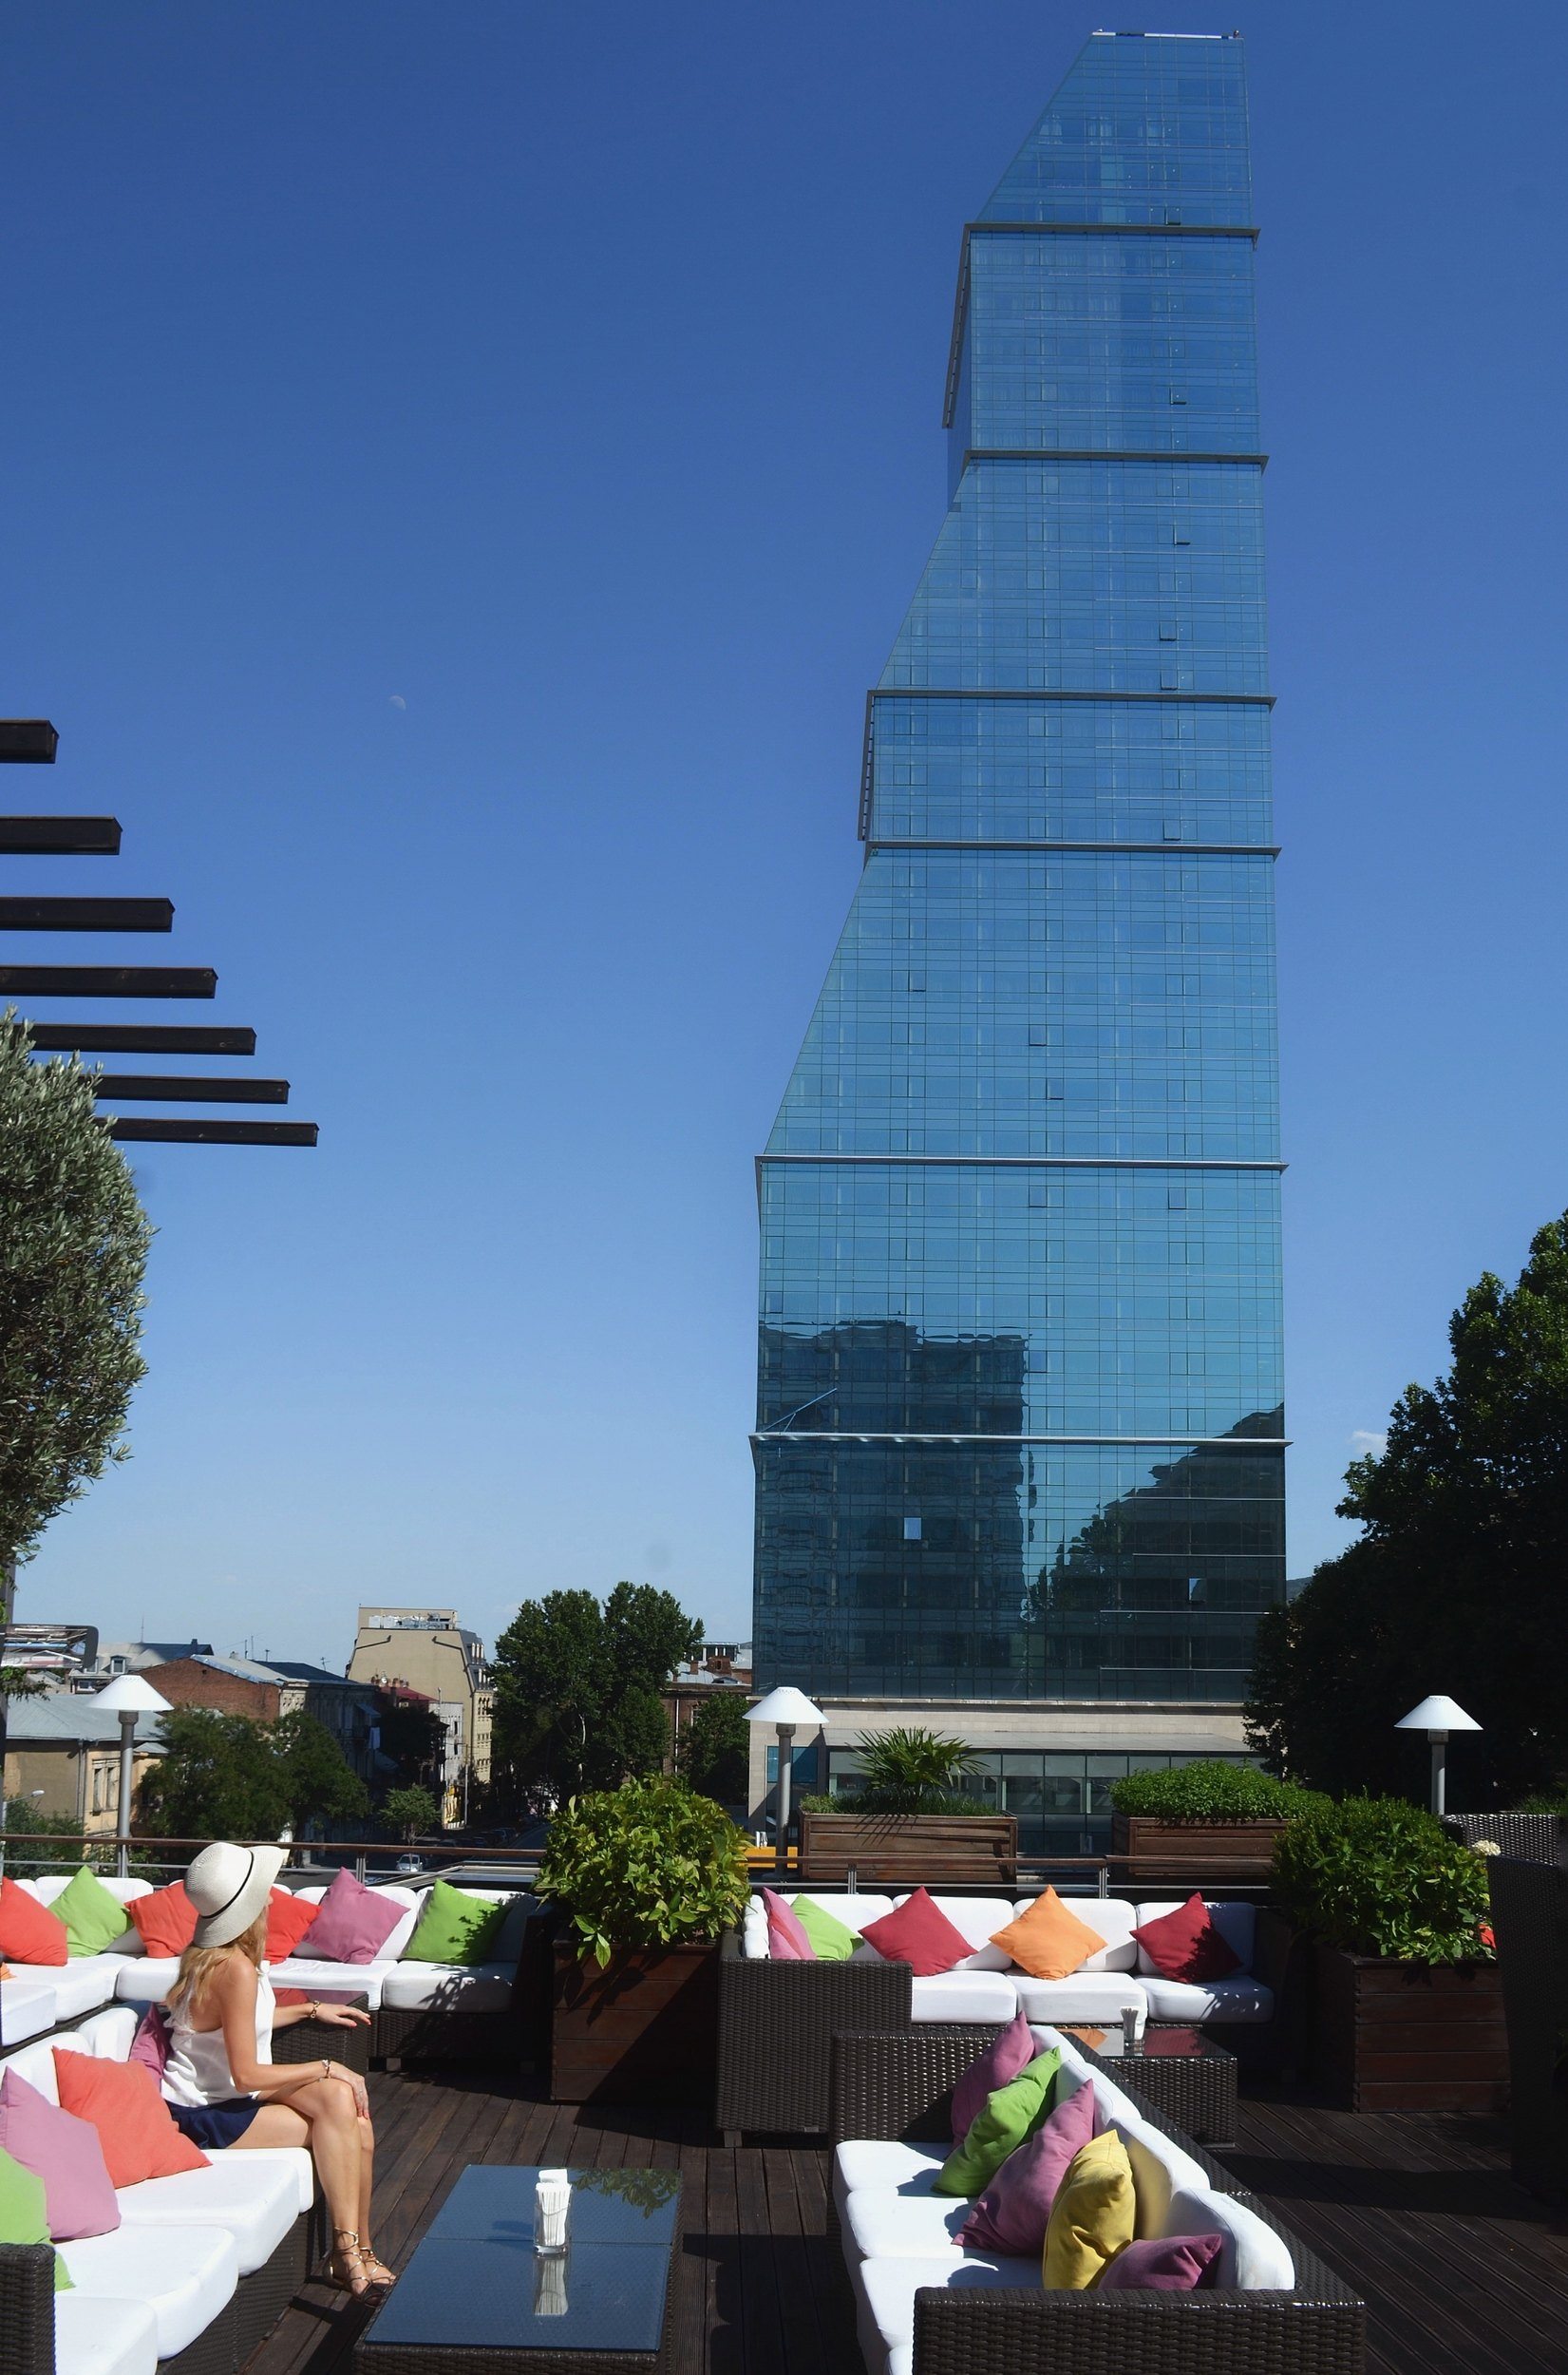 Lazy Afternoon at the Radisson Blu Iveria Terrace